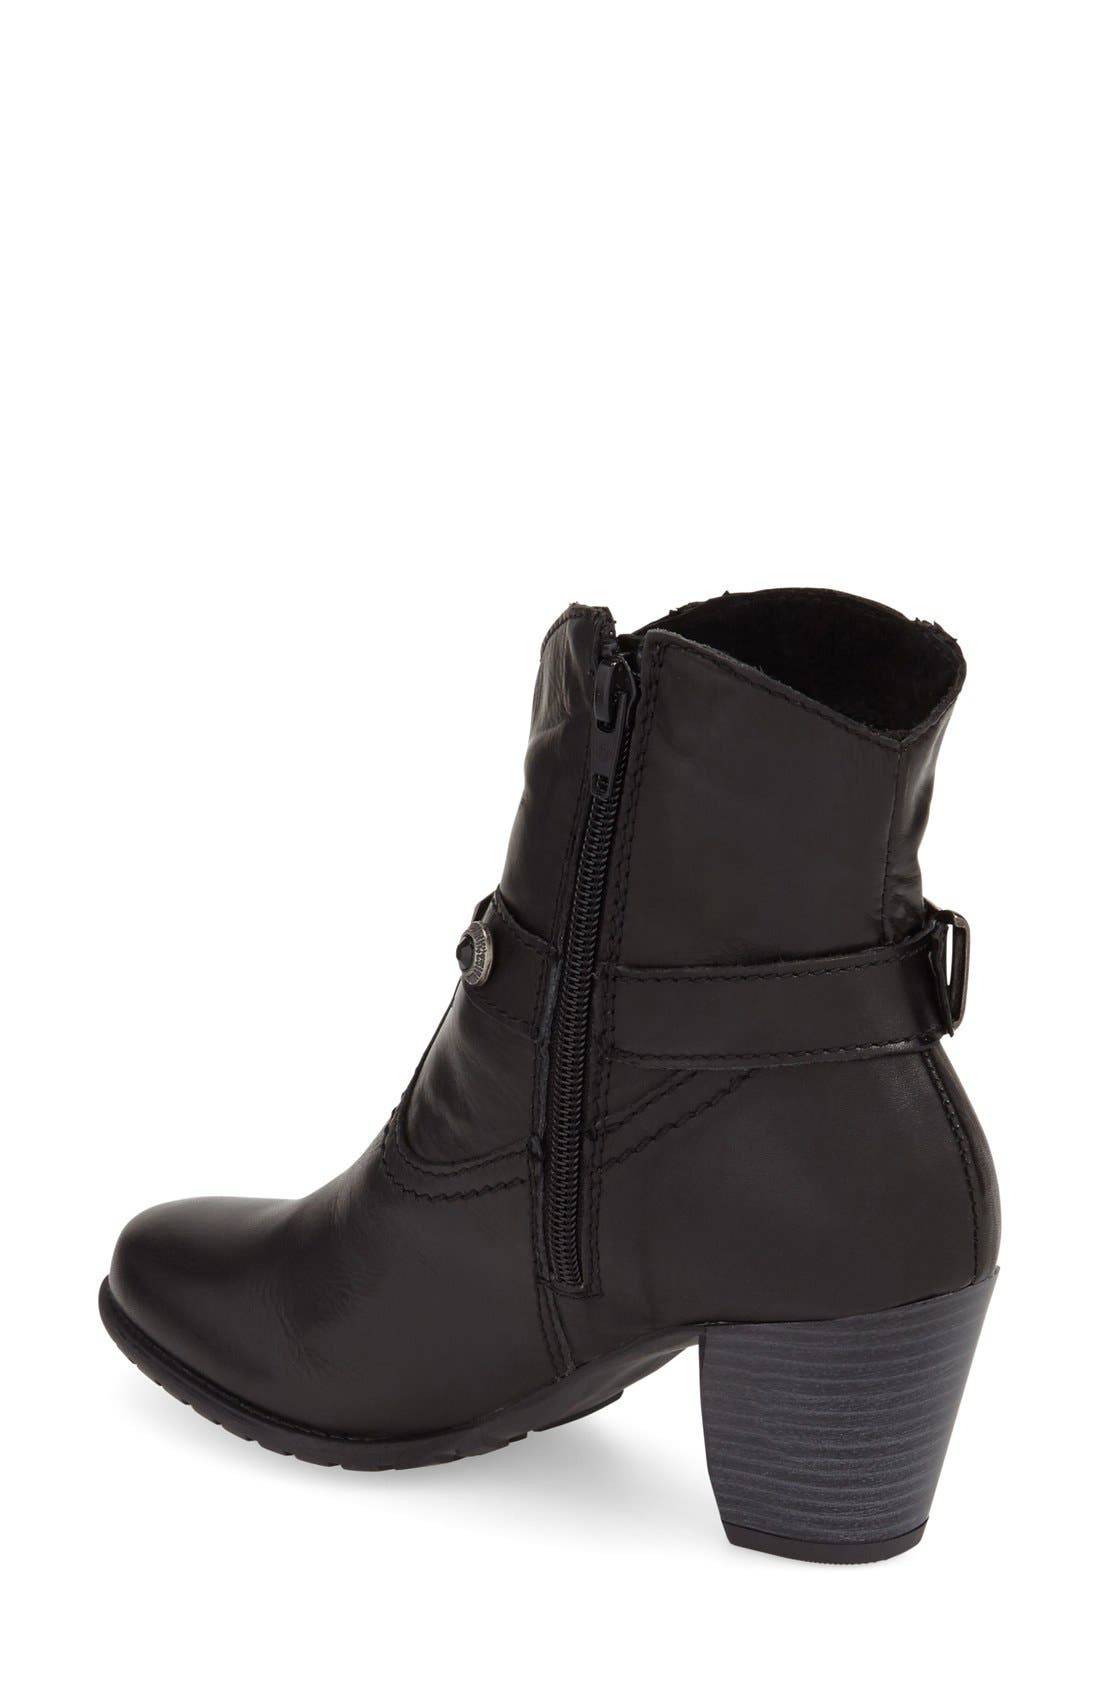 'Ramona' Boot,                             Alternate thumbnail 2, color,                             Black Leather